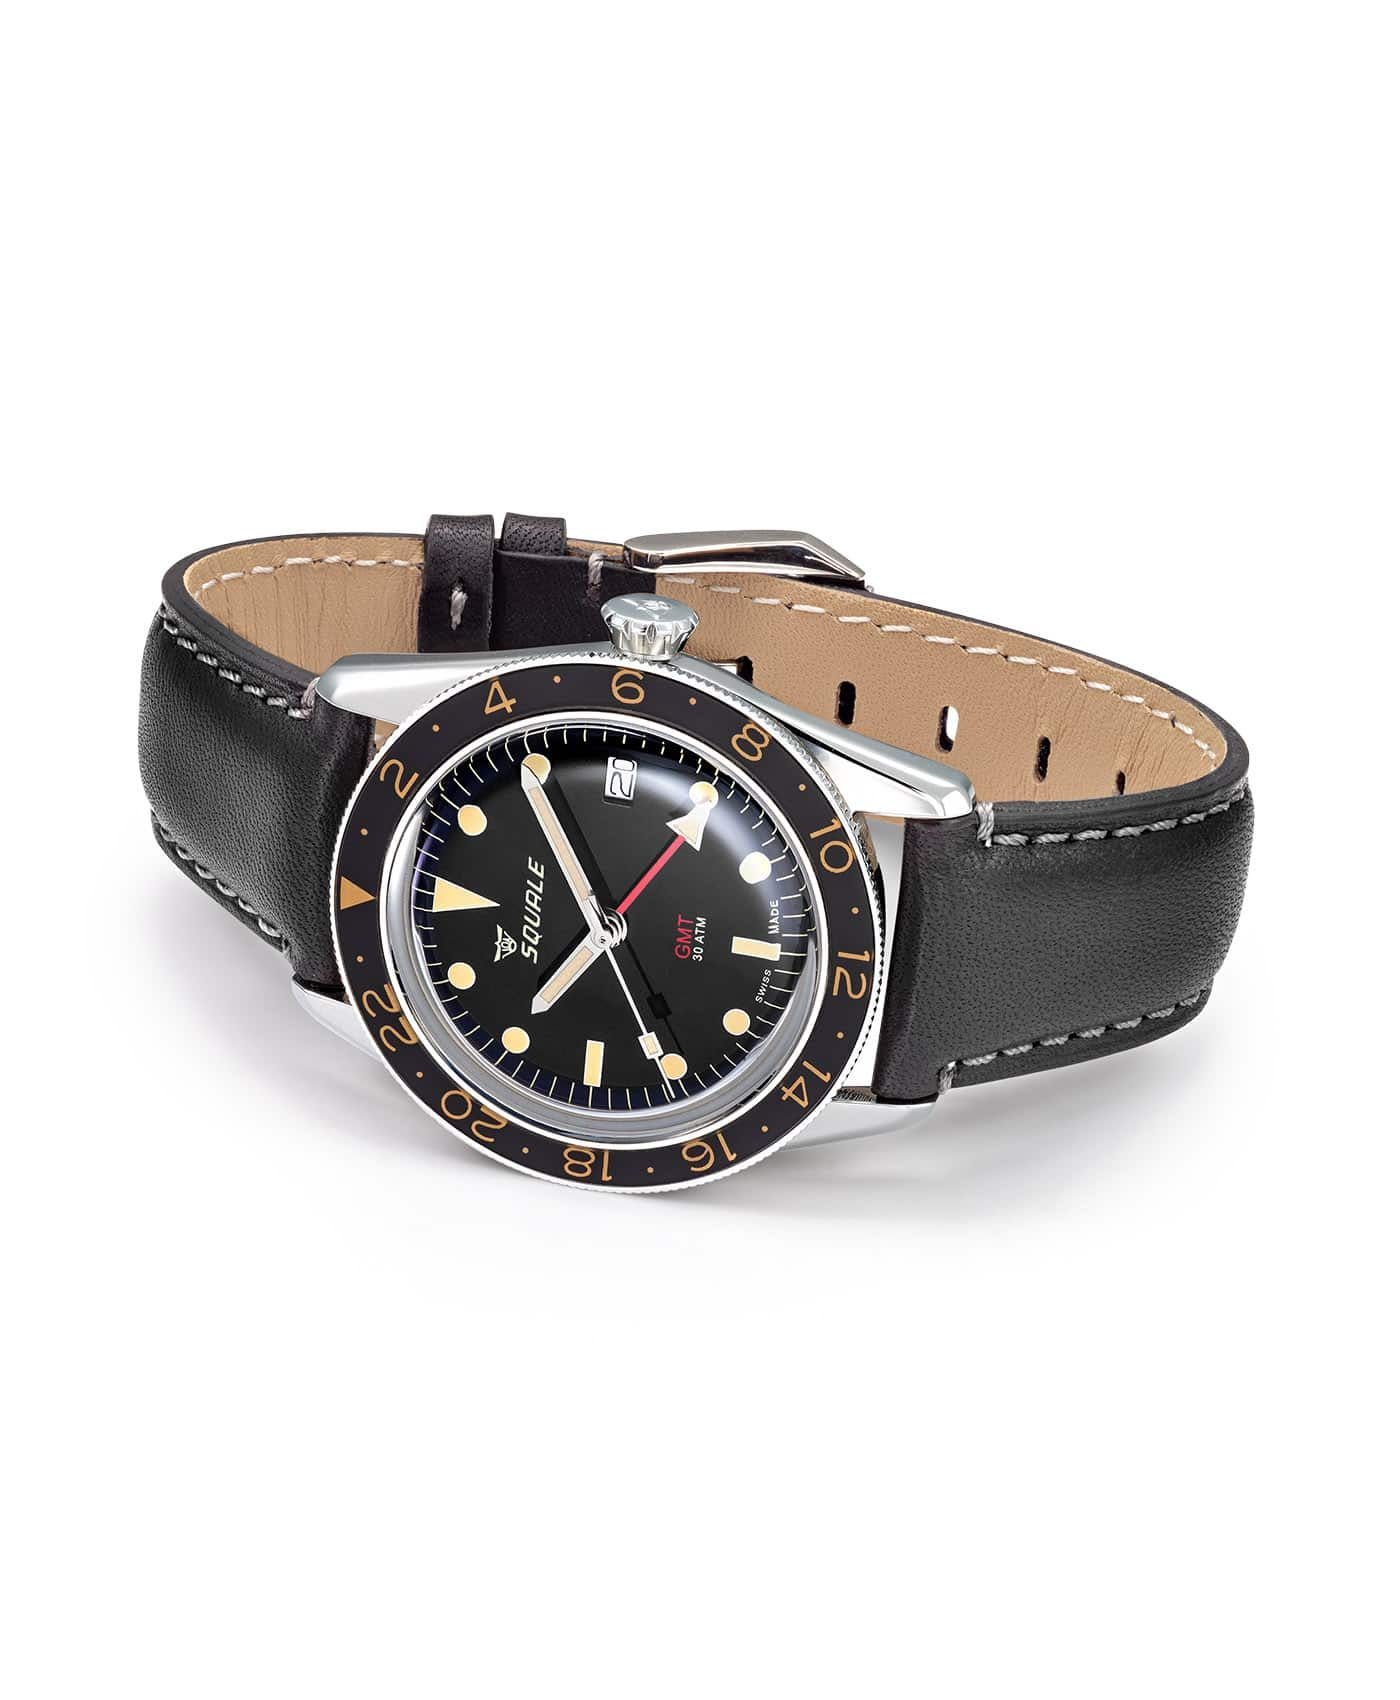 Squale SUB-39 GMT side